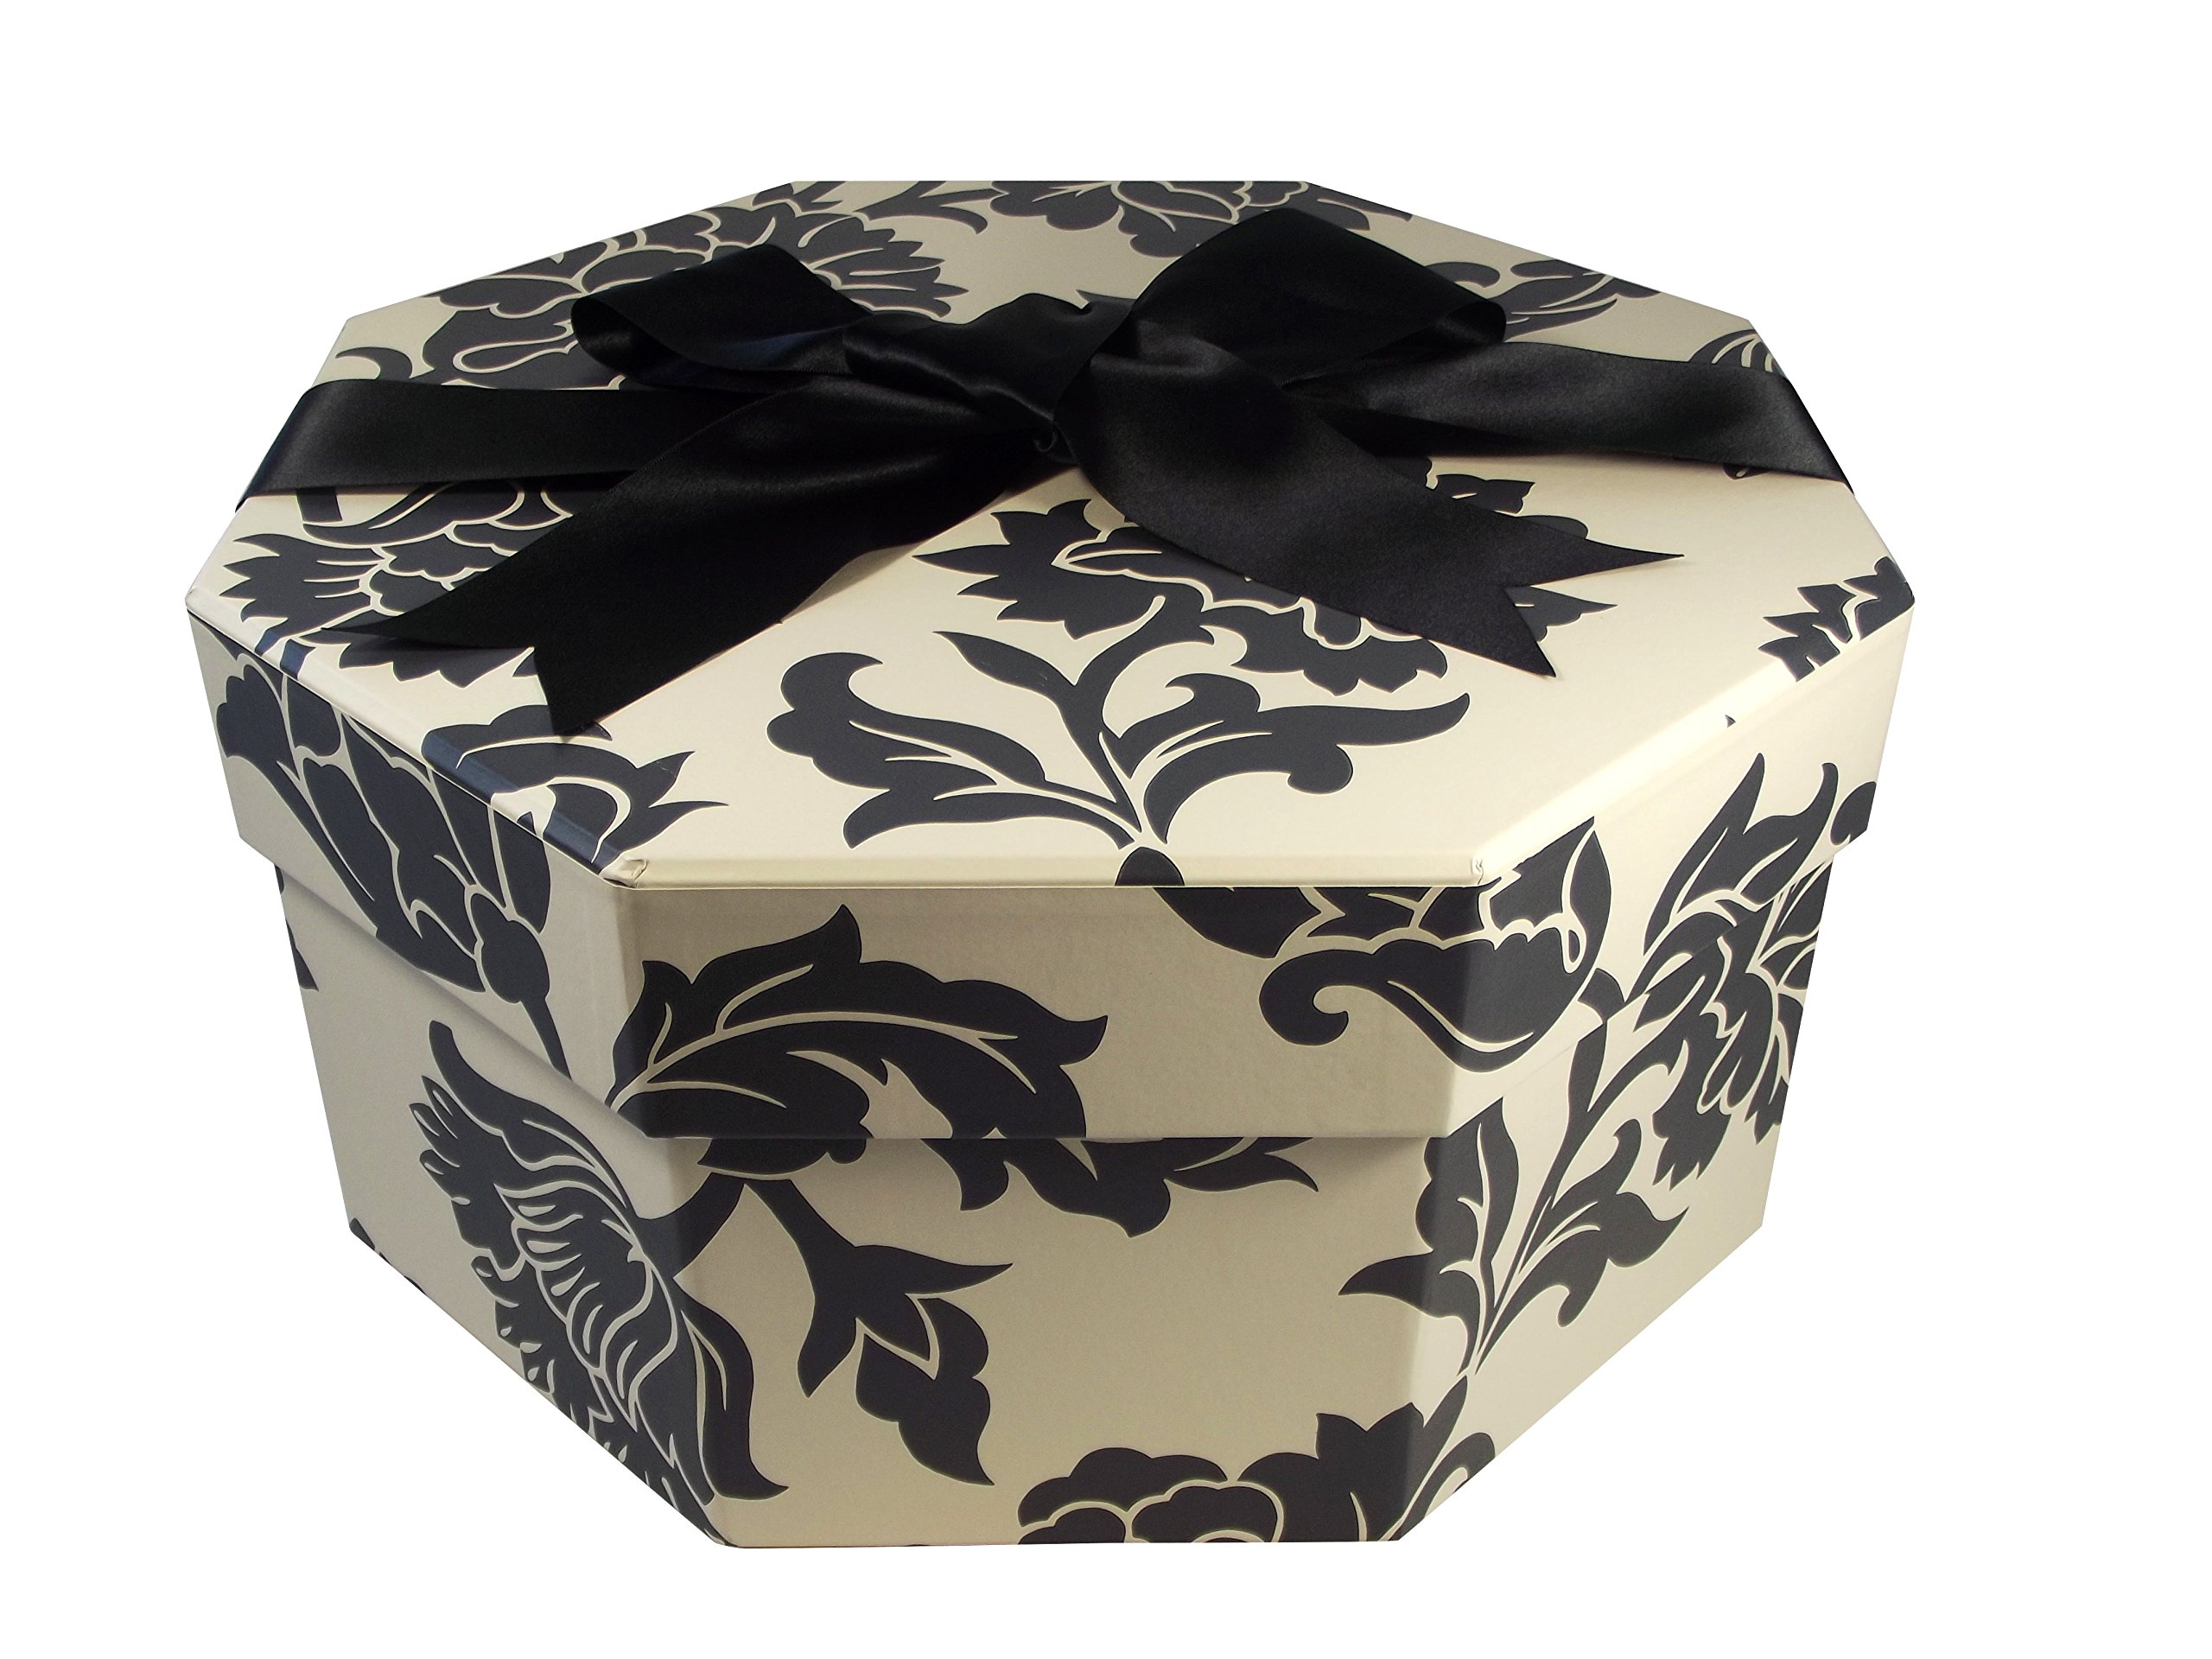 Foster-Stephens, inc Colorful Hat Box - Medusa Black & White (Medium: 15.75'' Diameter x 7.87'') by Foster-Stephens, inc